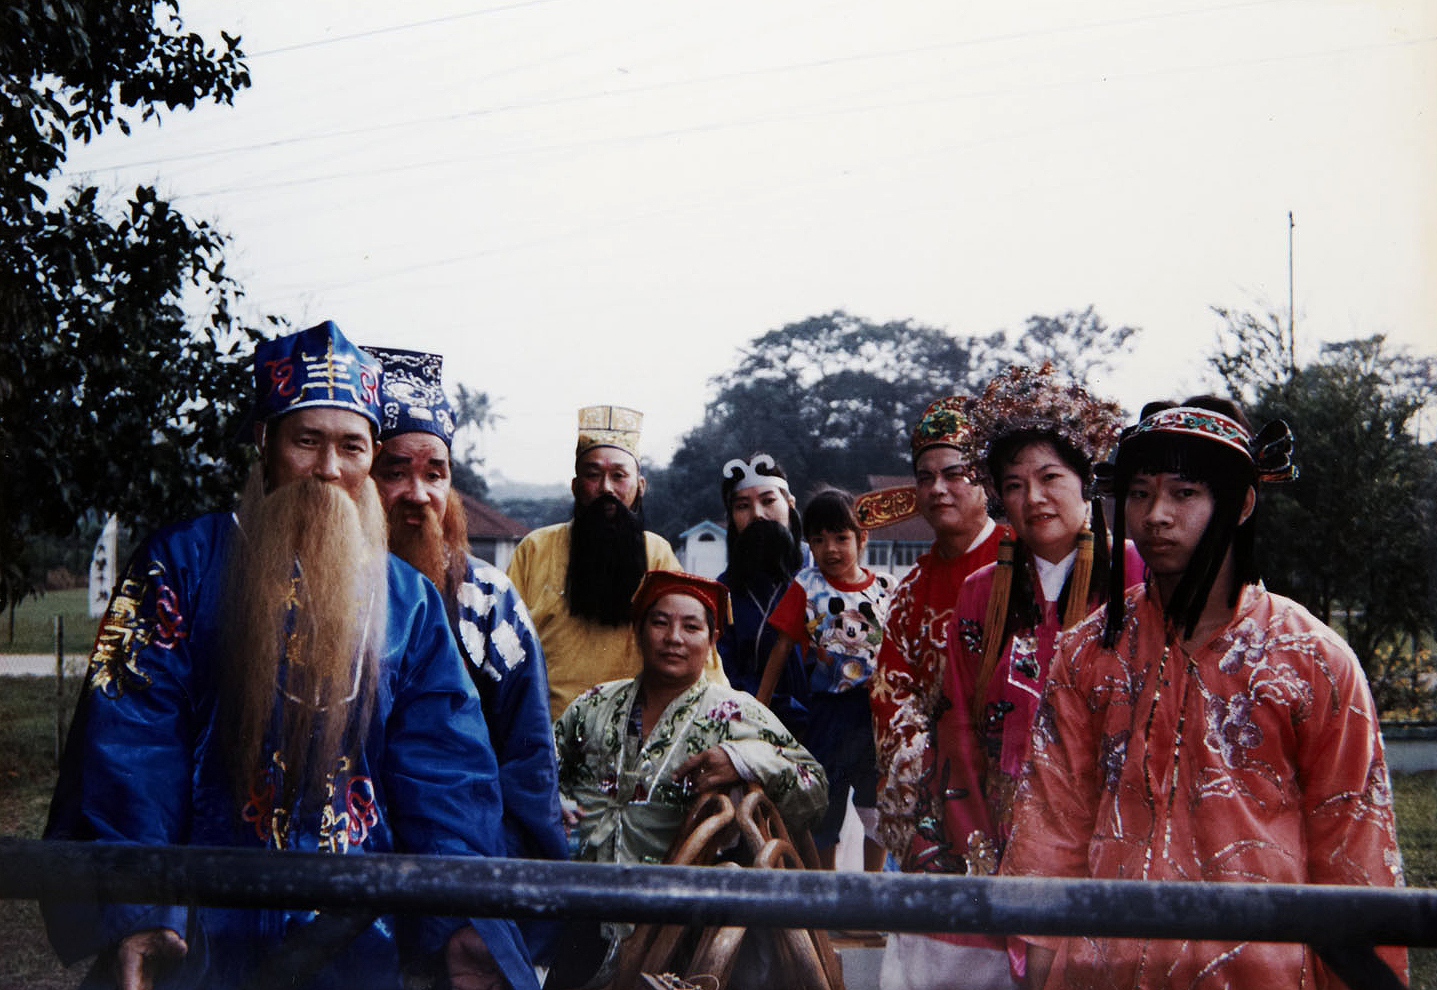 Devotees dressed up as the Eight Immortals during a Fuh Huey Kong procession in the settlement. (photo courtesy of Fuh Huey Kong)